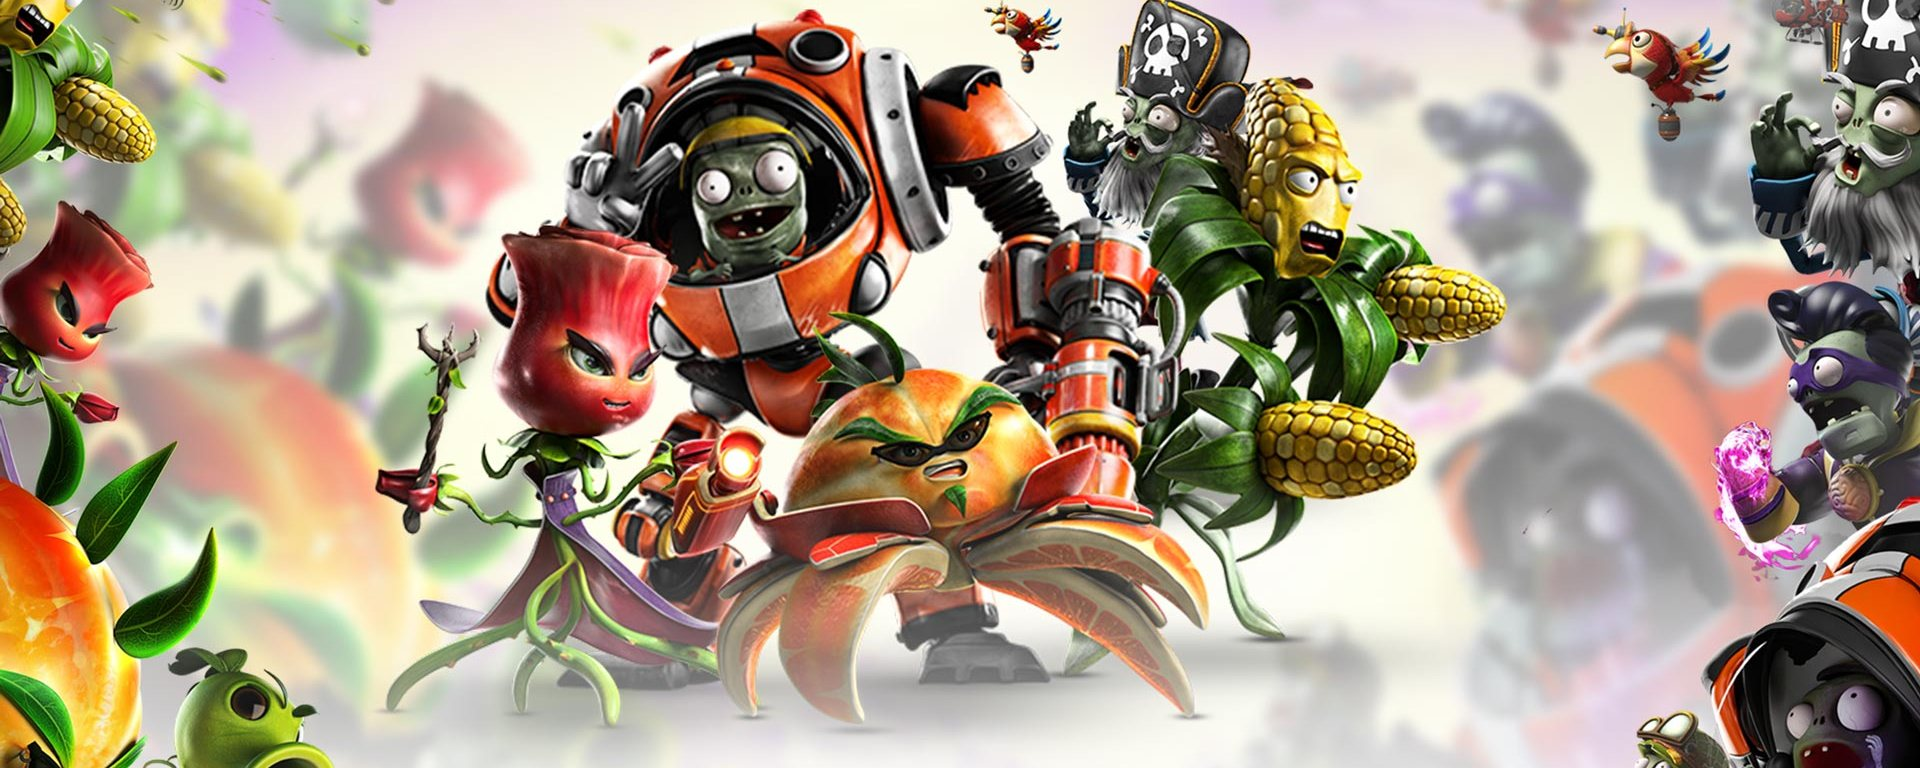 Plants vs Zombies: Garden Warfare 2 Review – CounterAttack Games